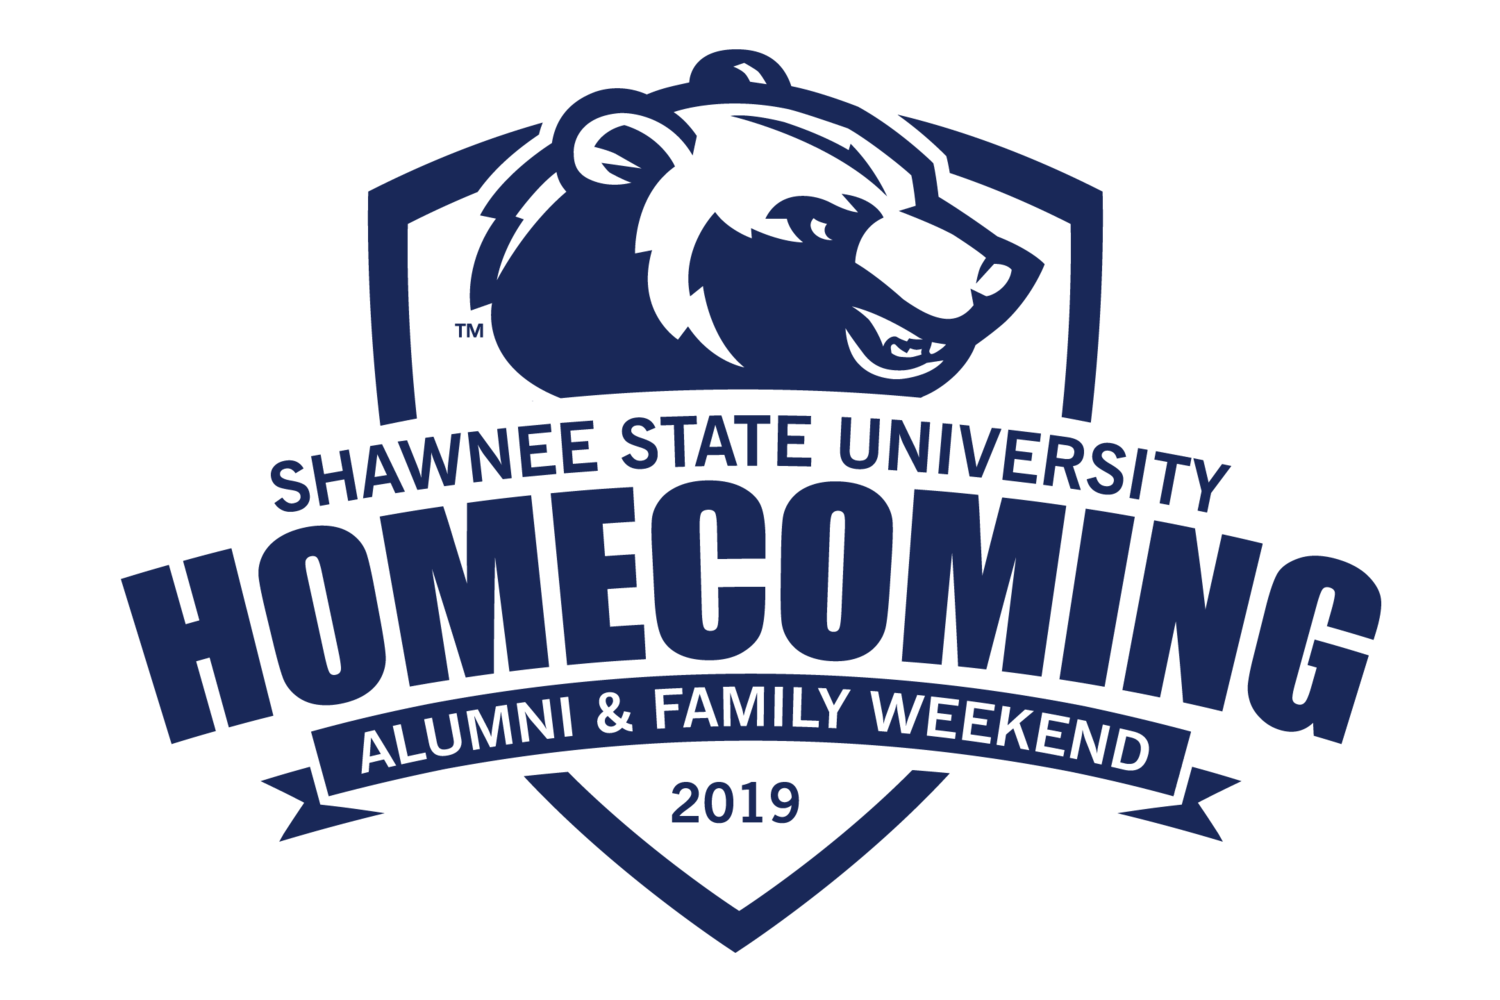 SSU Homecoming | Alumni & Family Weekend 2019